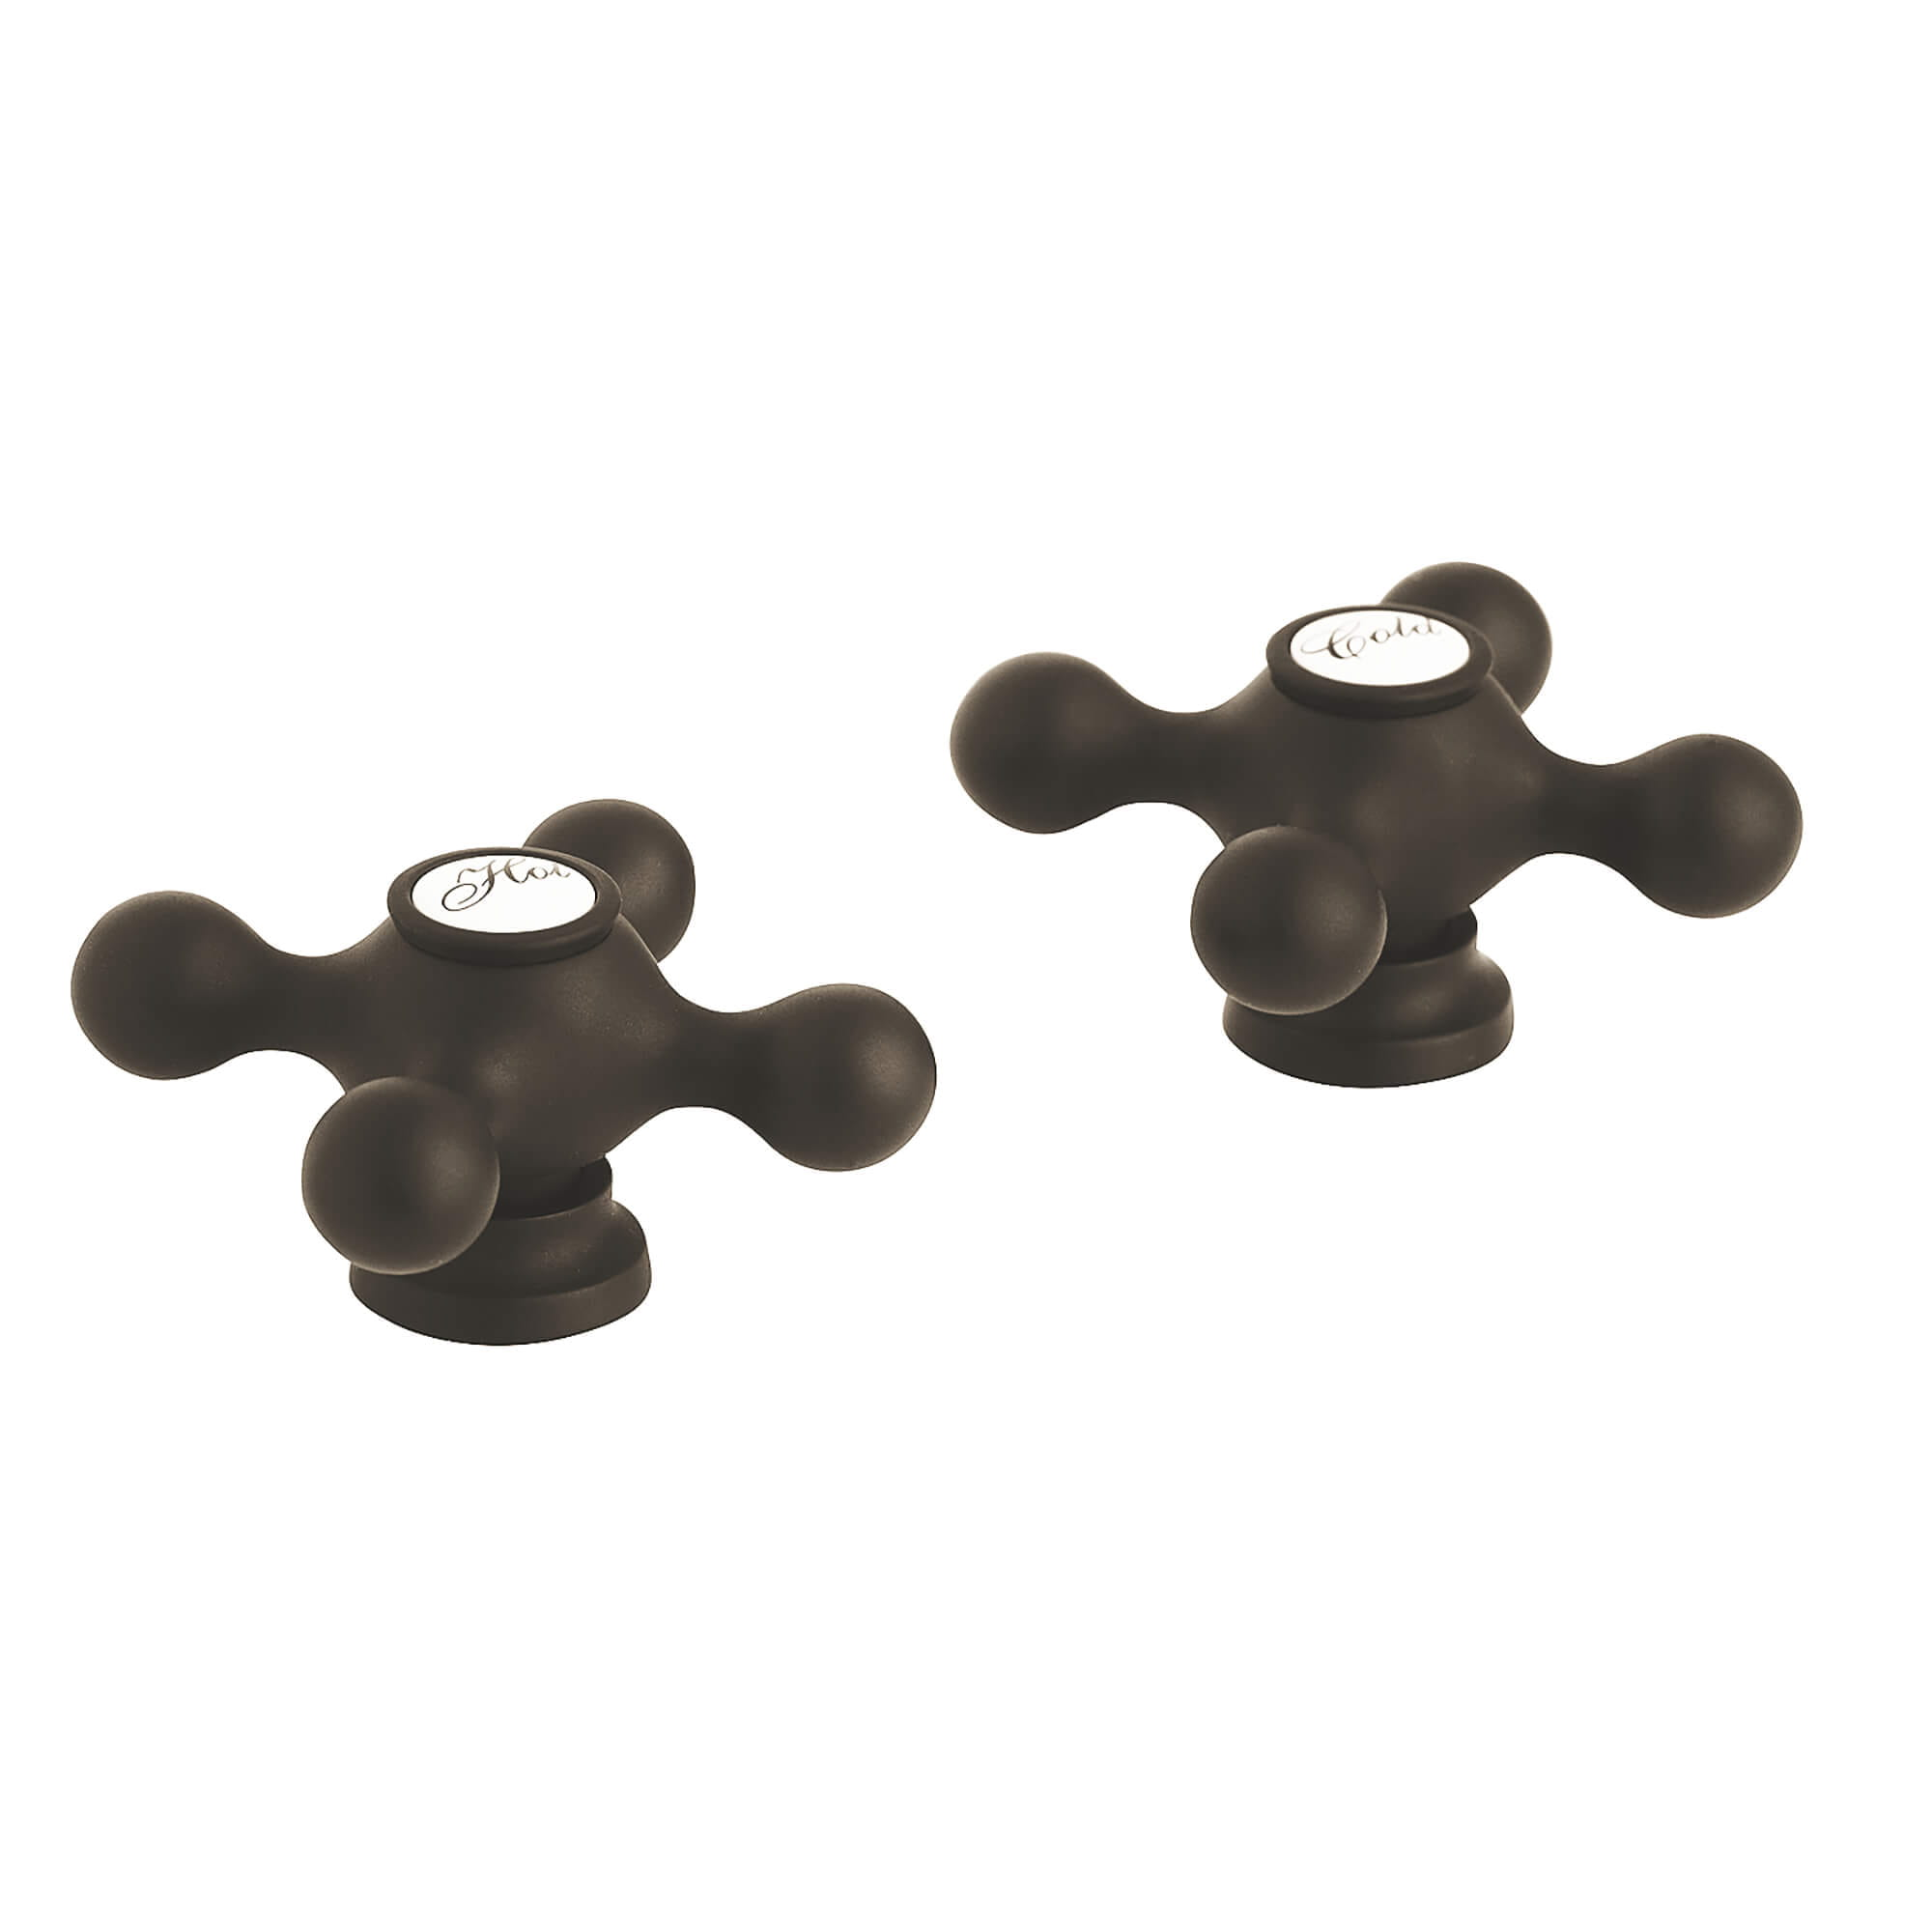 Cross Handles Pair GROHE OIL RUBBED BRONZE